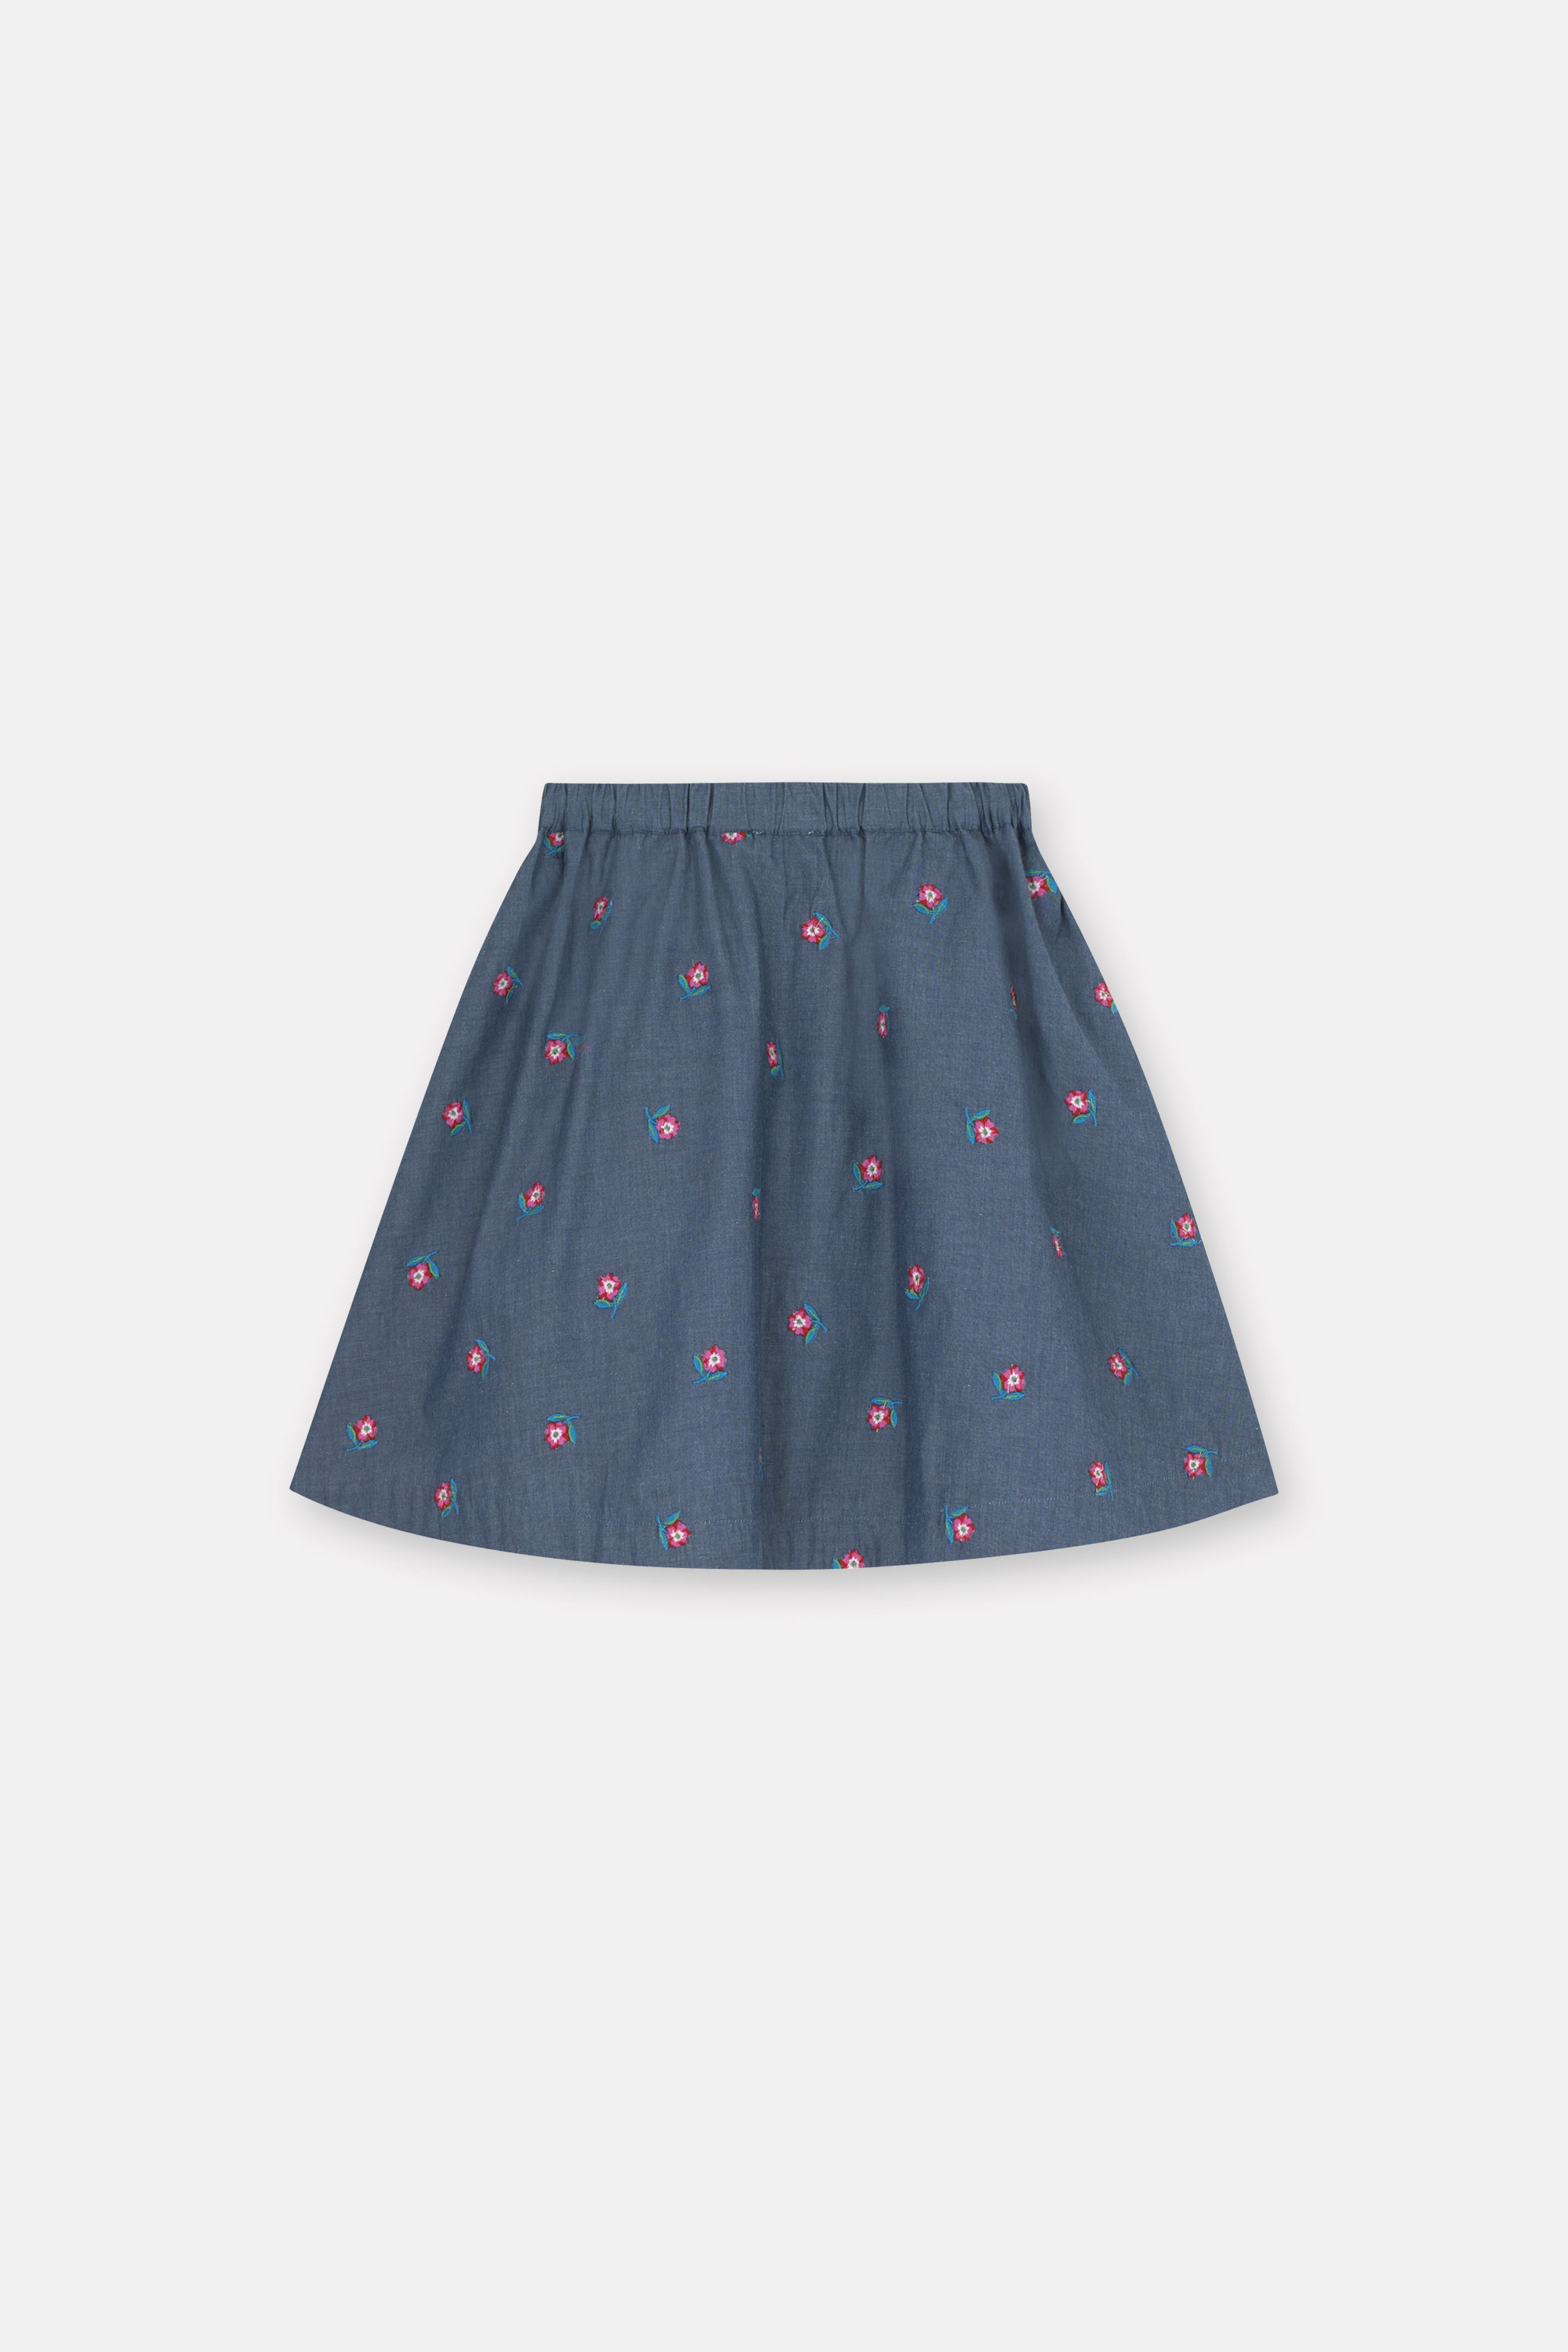 Cath Kidston Greenwich Flowers Skirt in Chambray, 1-2 yr